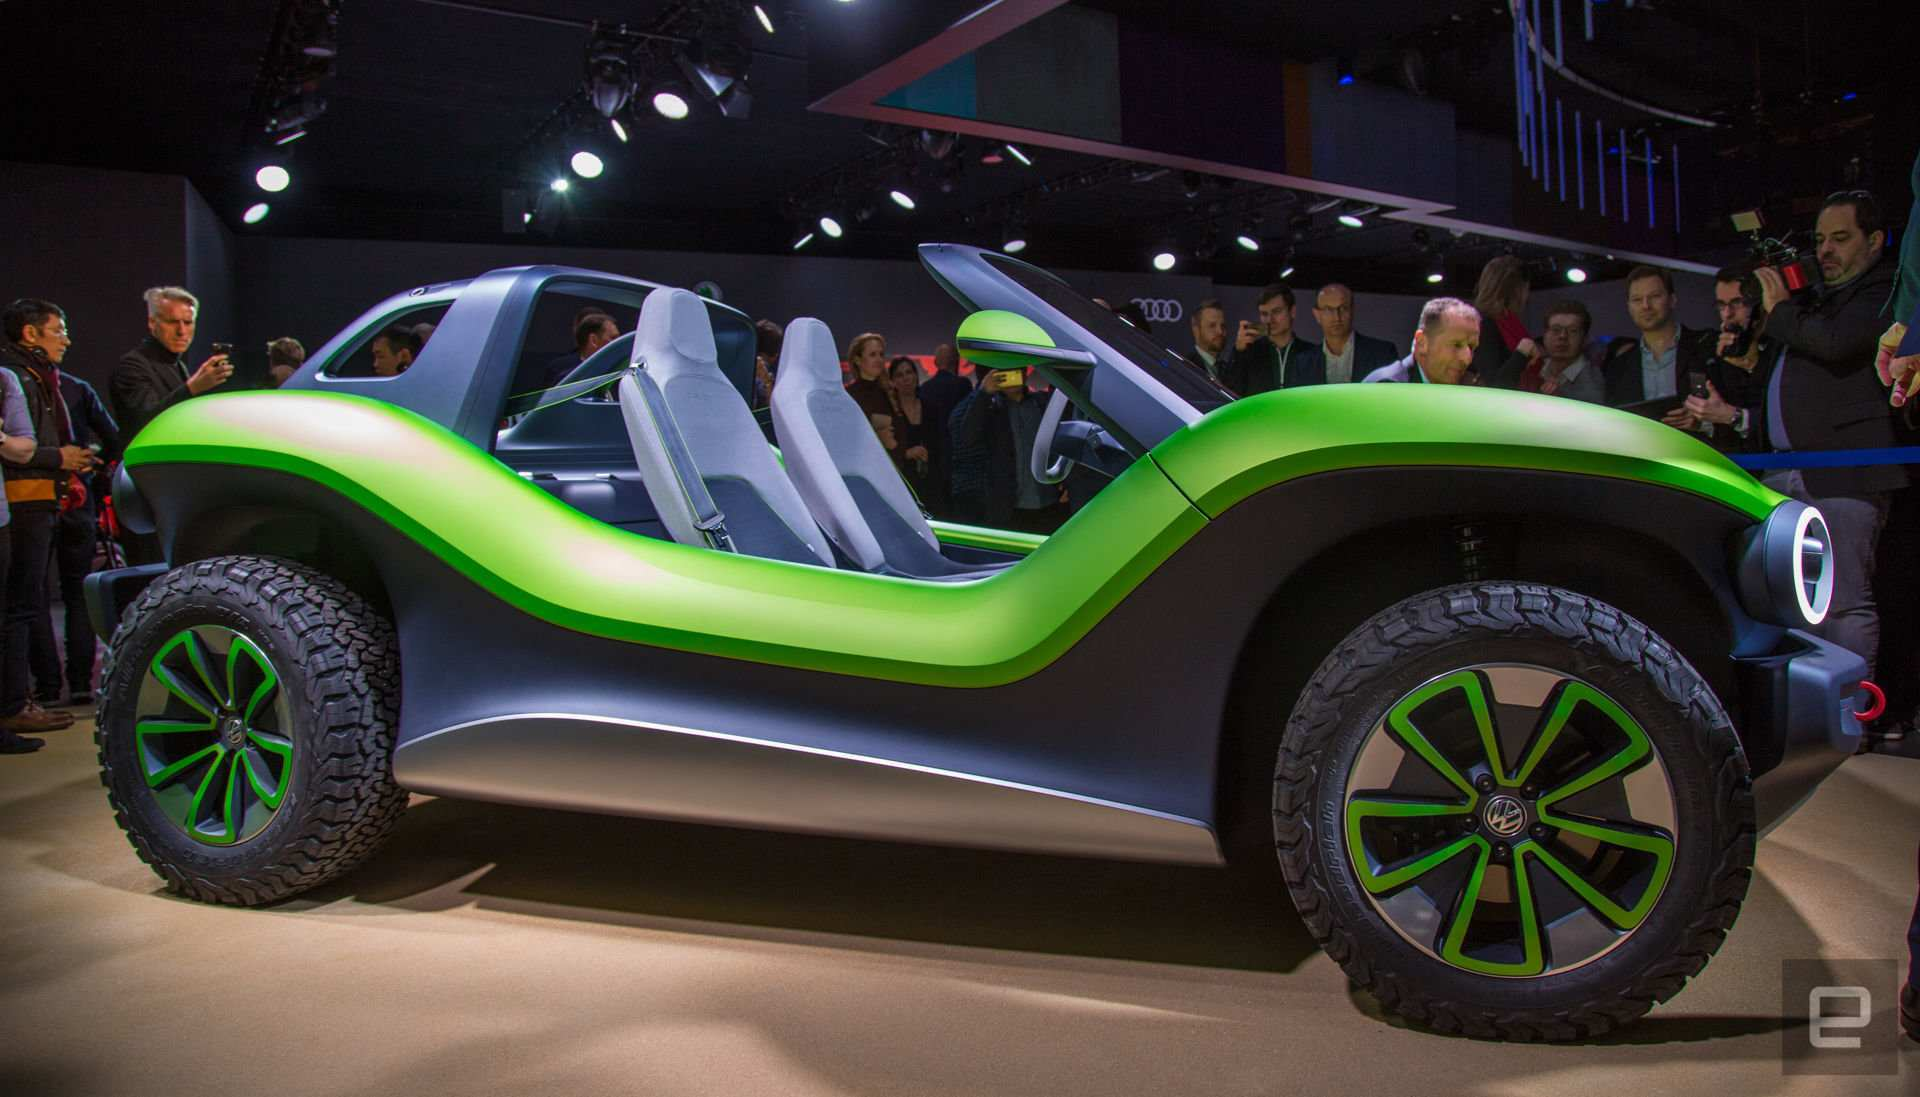 69 Concept of 2020 Volkswagen Dune Buggy Photos with 2020 Volkswagen Dune Buggy